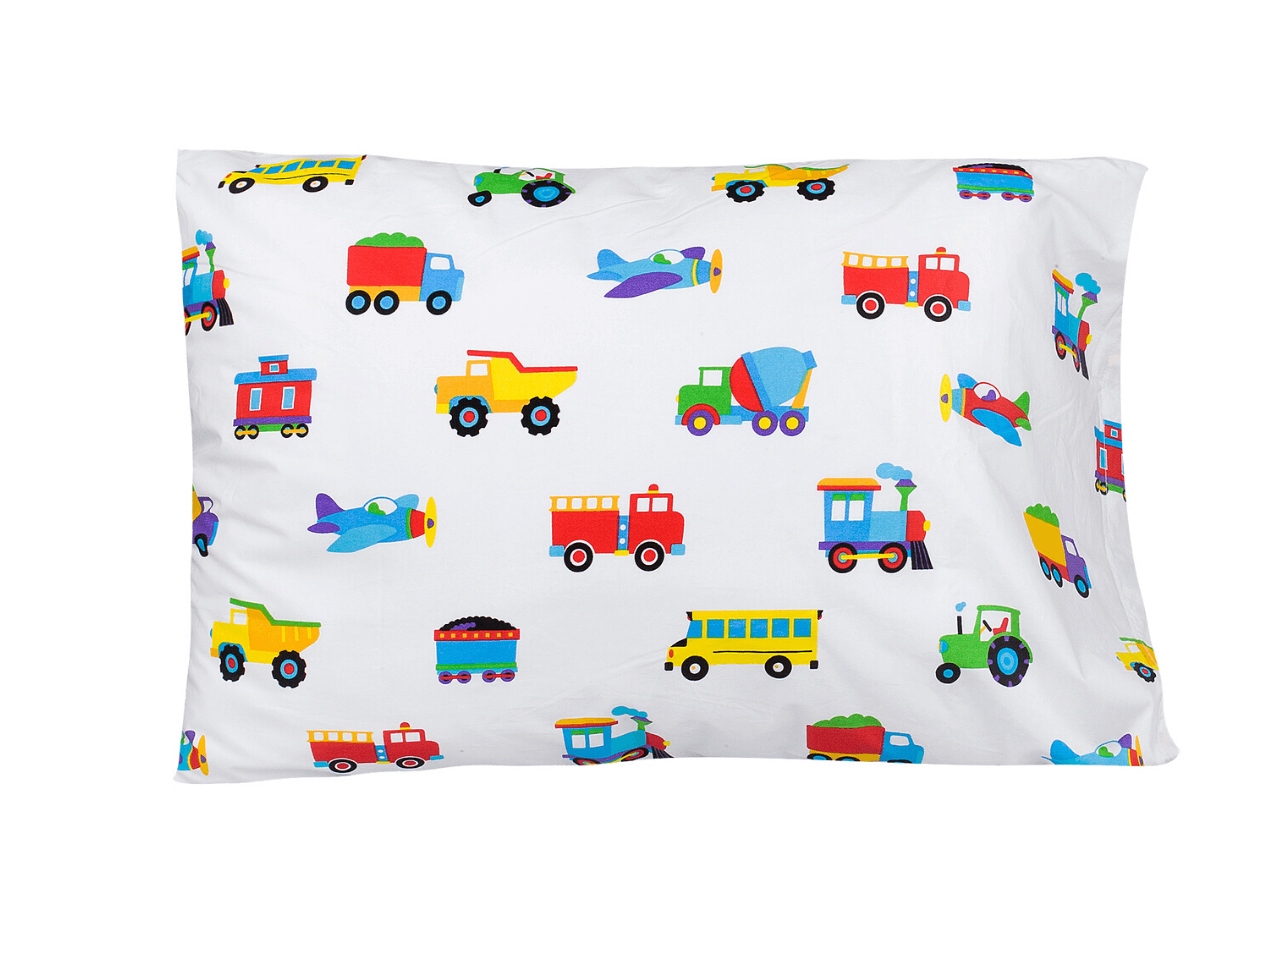 100% Cotton Pillow Cases - Trains, Planes & Trucks